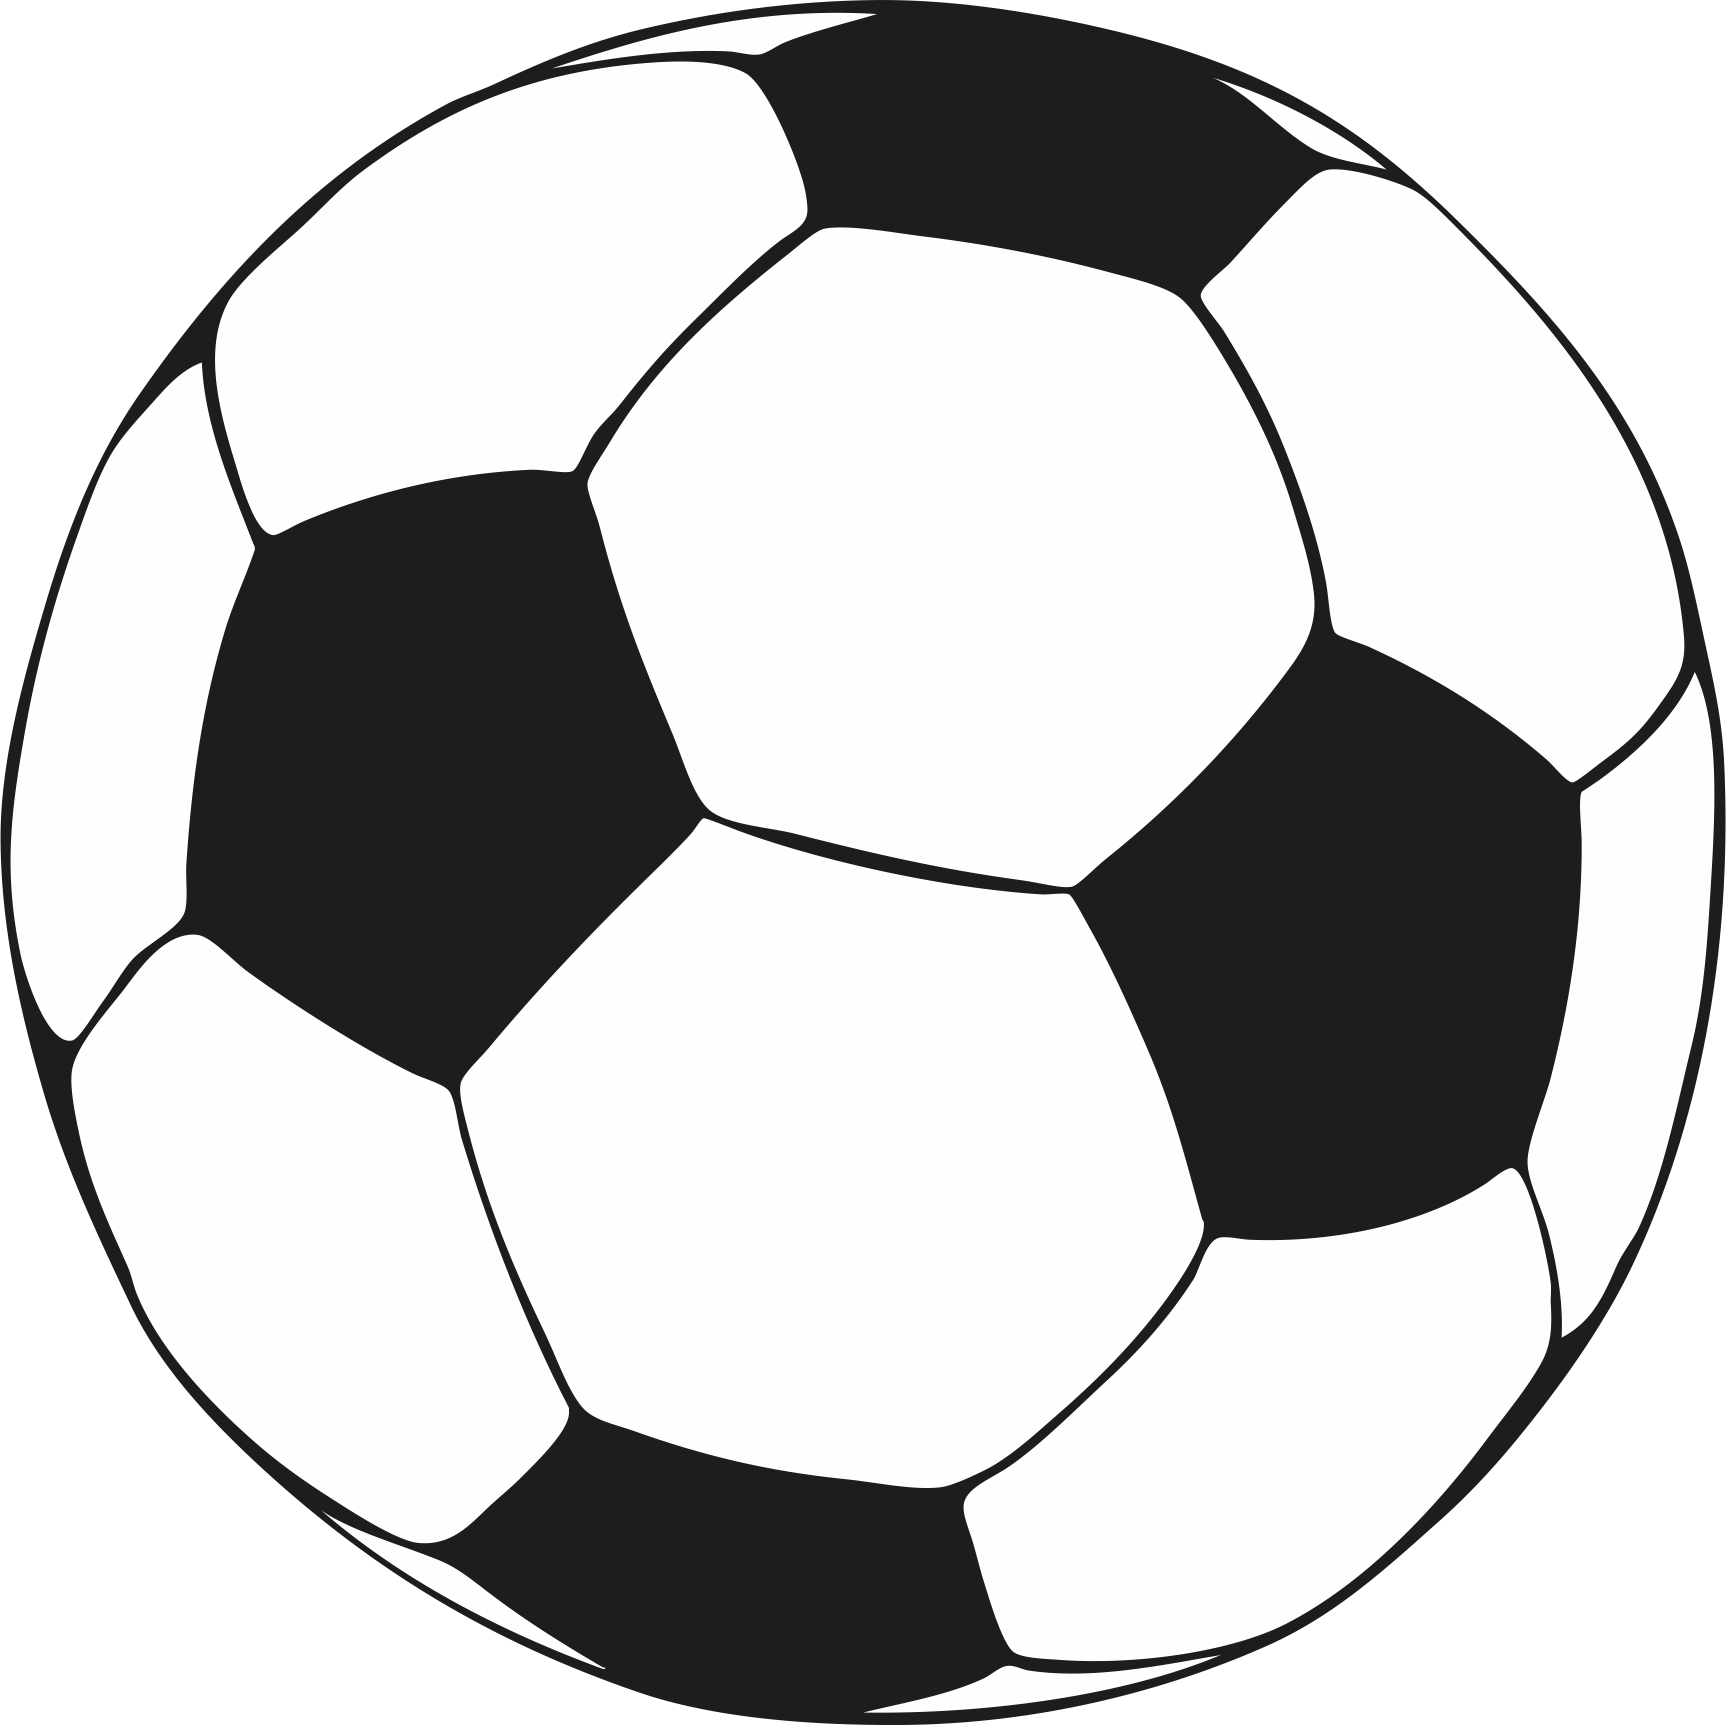 Coloring pages of a soccer ball clipart best for Soccer balls coloring pages